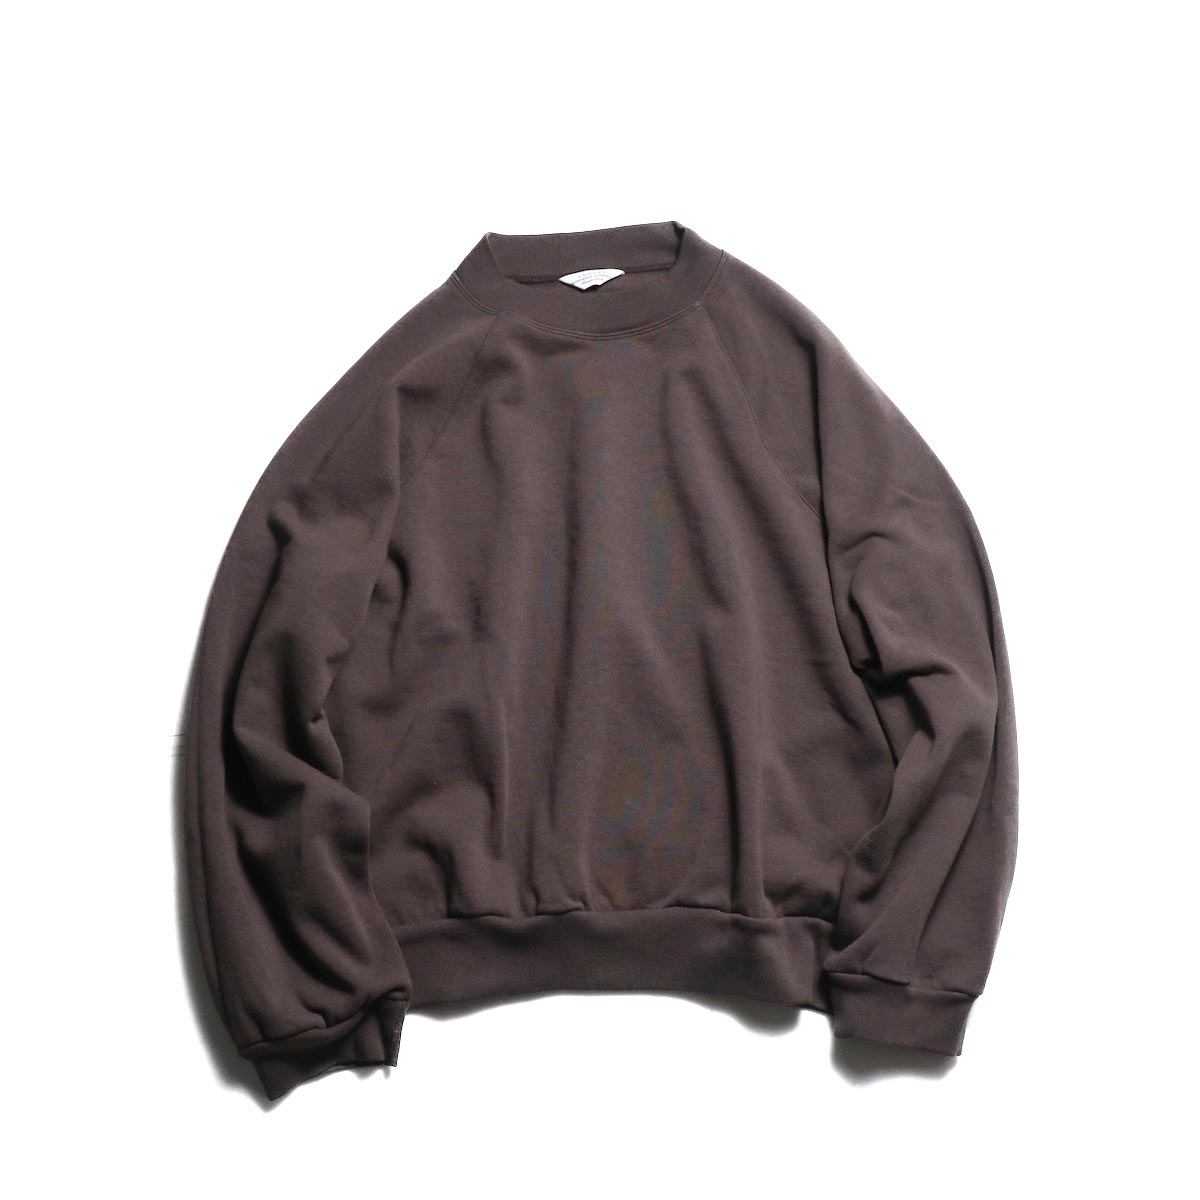 UNUSED / US1678 crew neck sweat shirt. -Brown